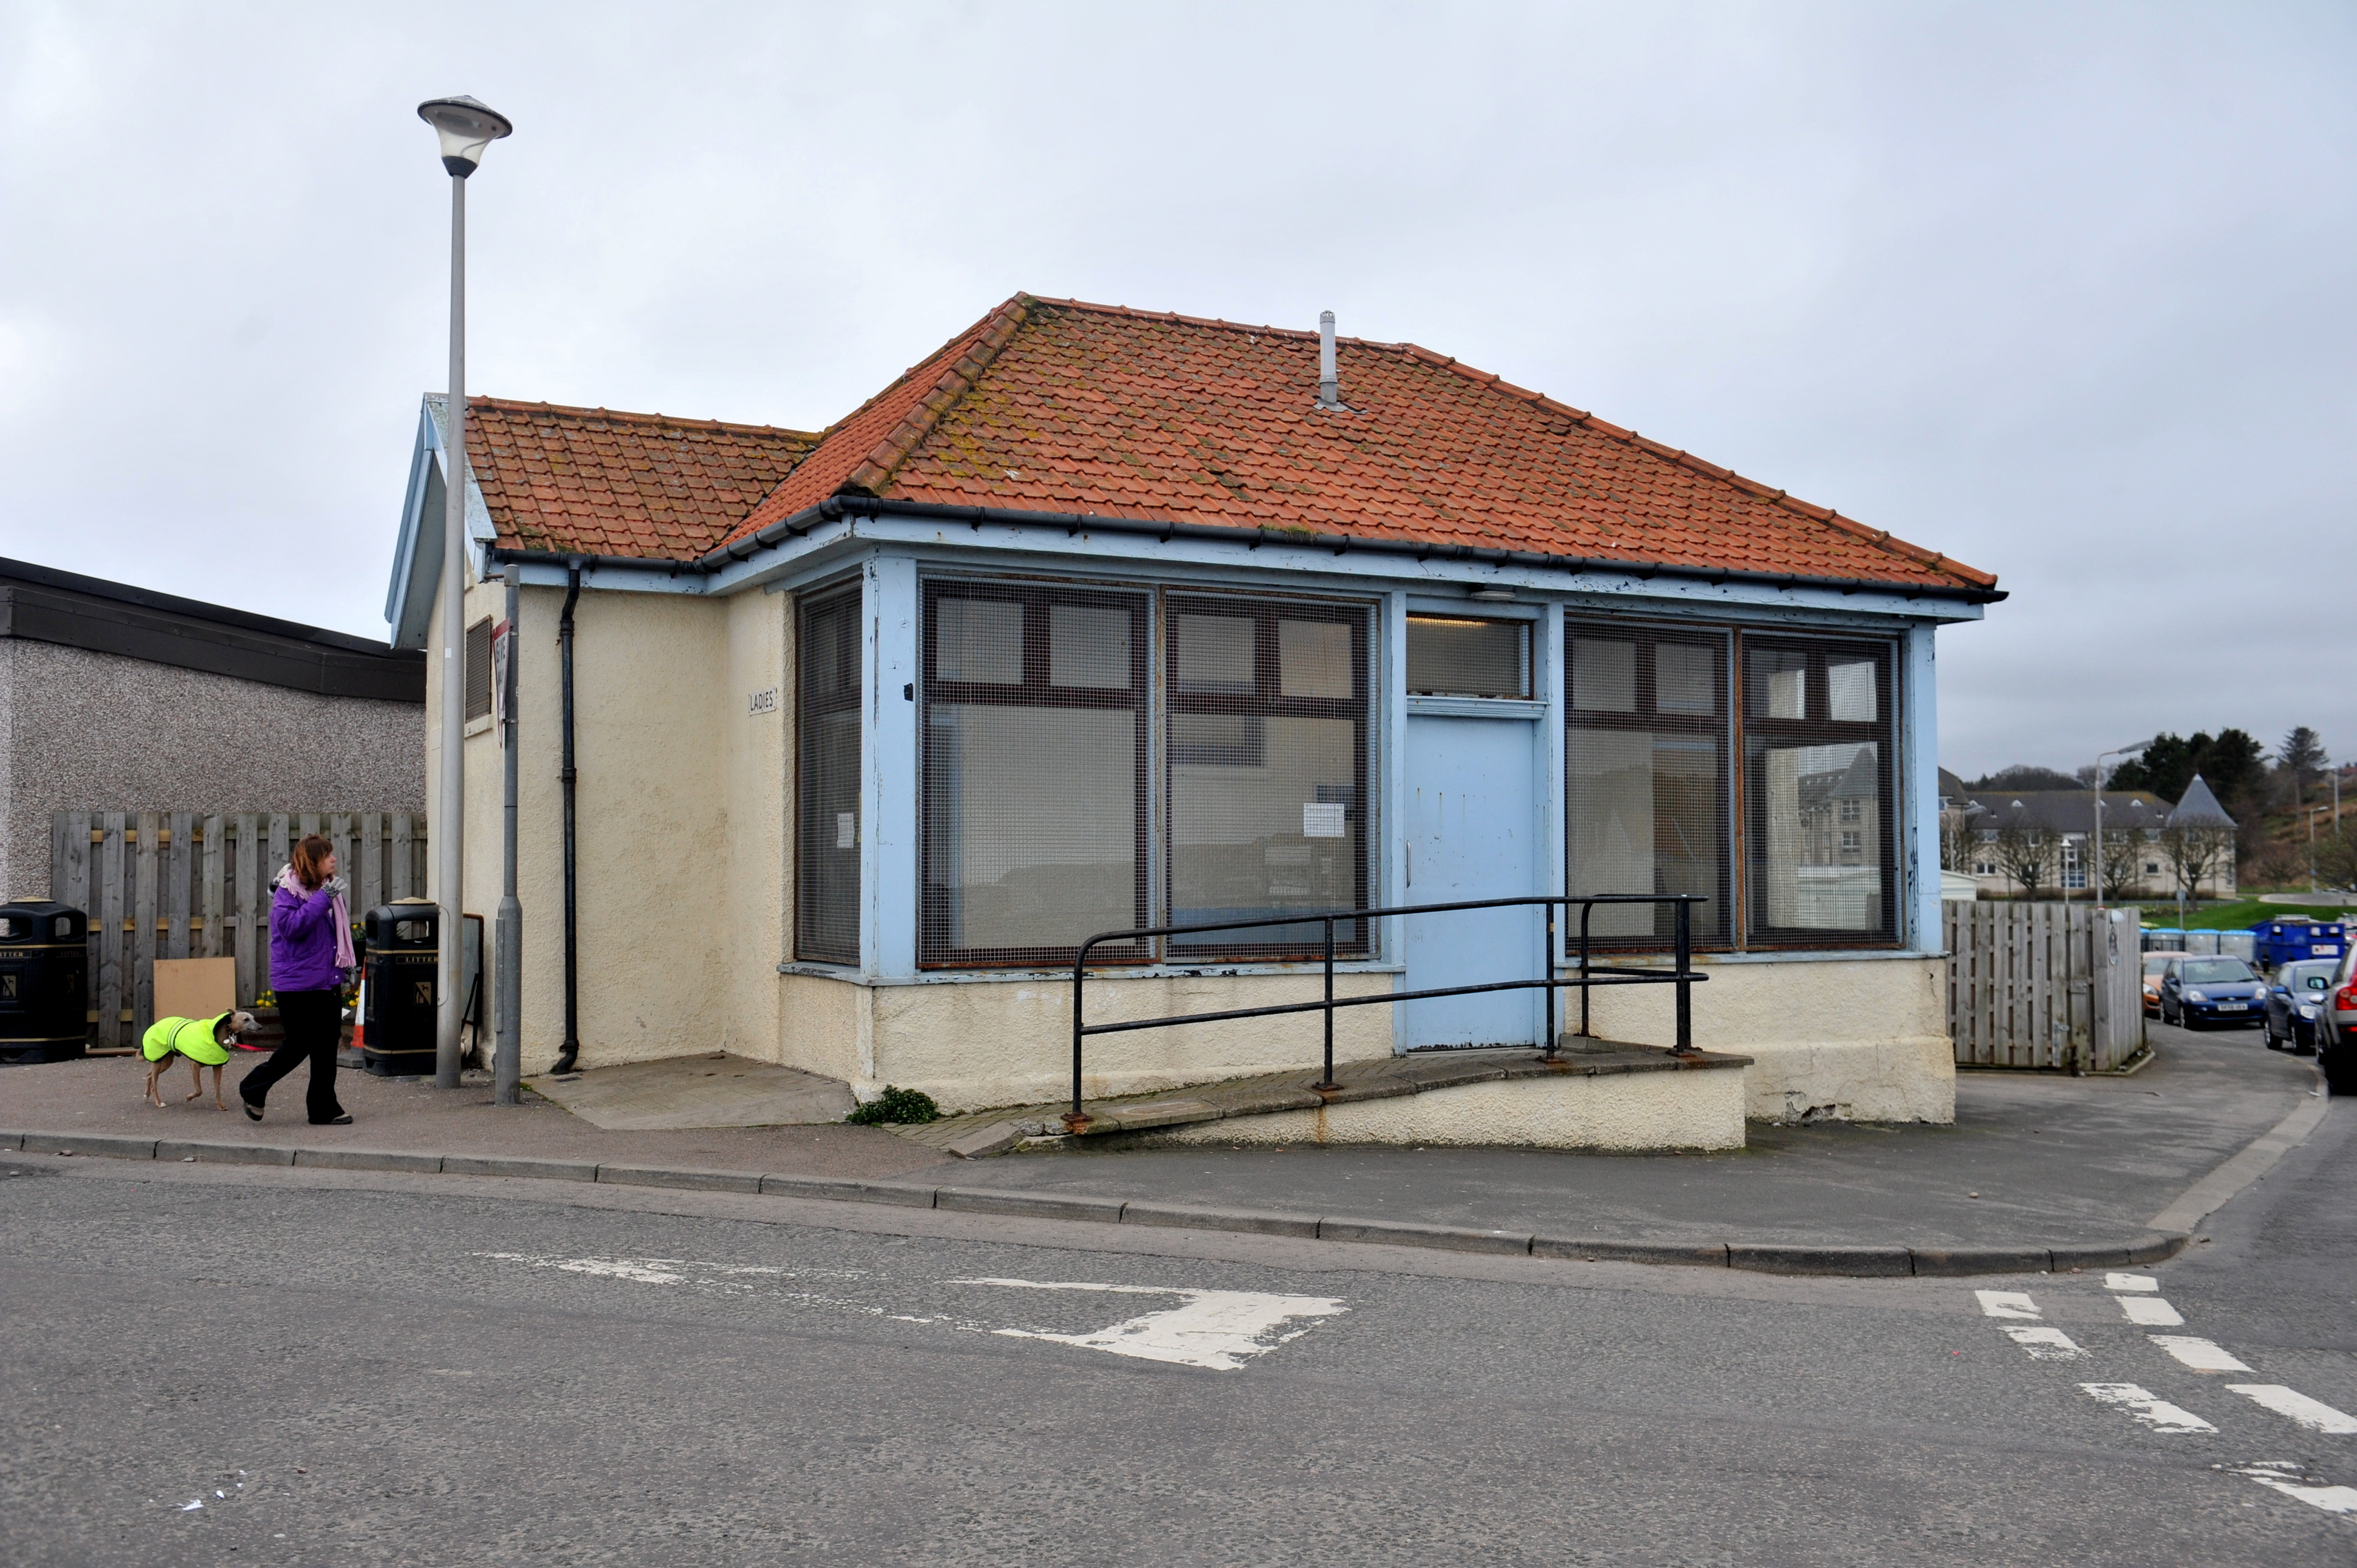 The public toilet in Stonehaven will be closed as part of the plan.